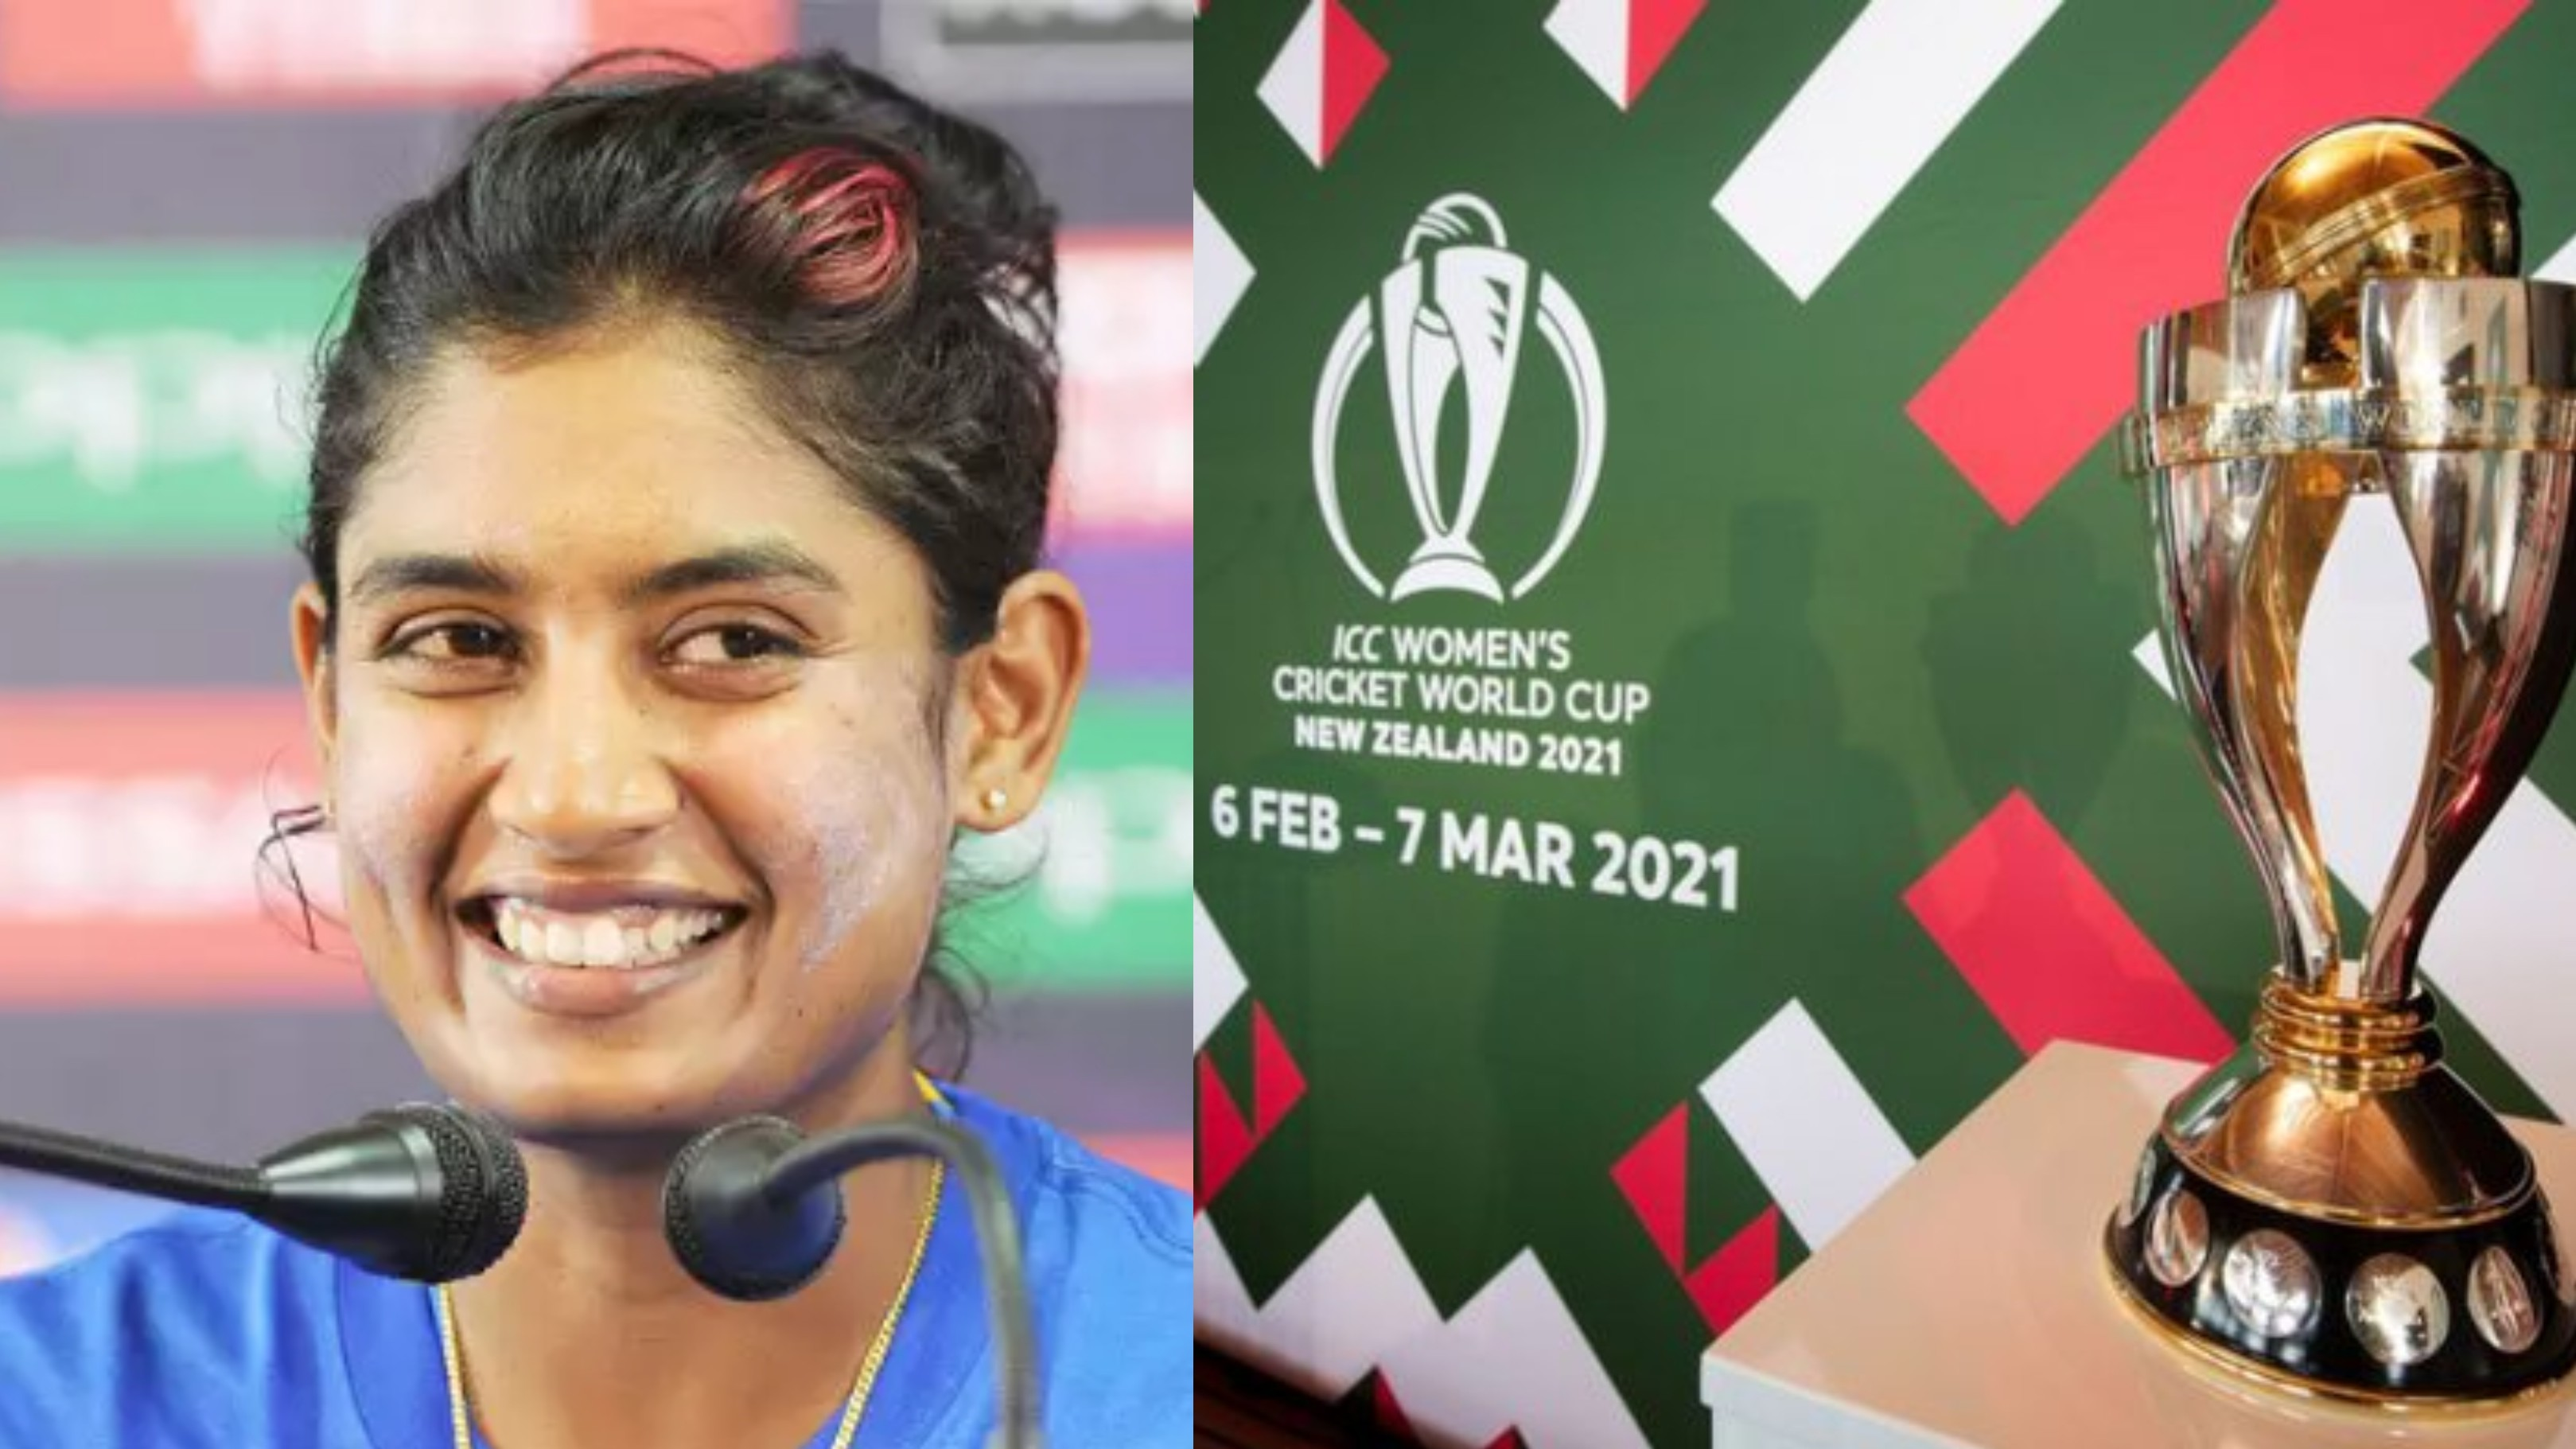 The 2021 Women's World Cup is pretty much open due to COVID-19 pandemic, says Mithali Raj